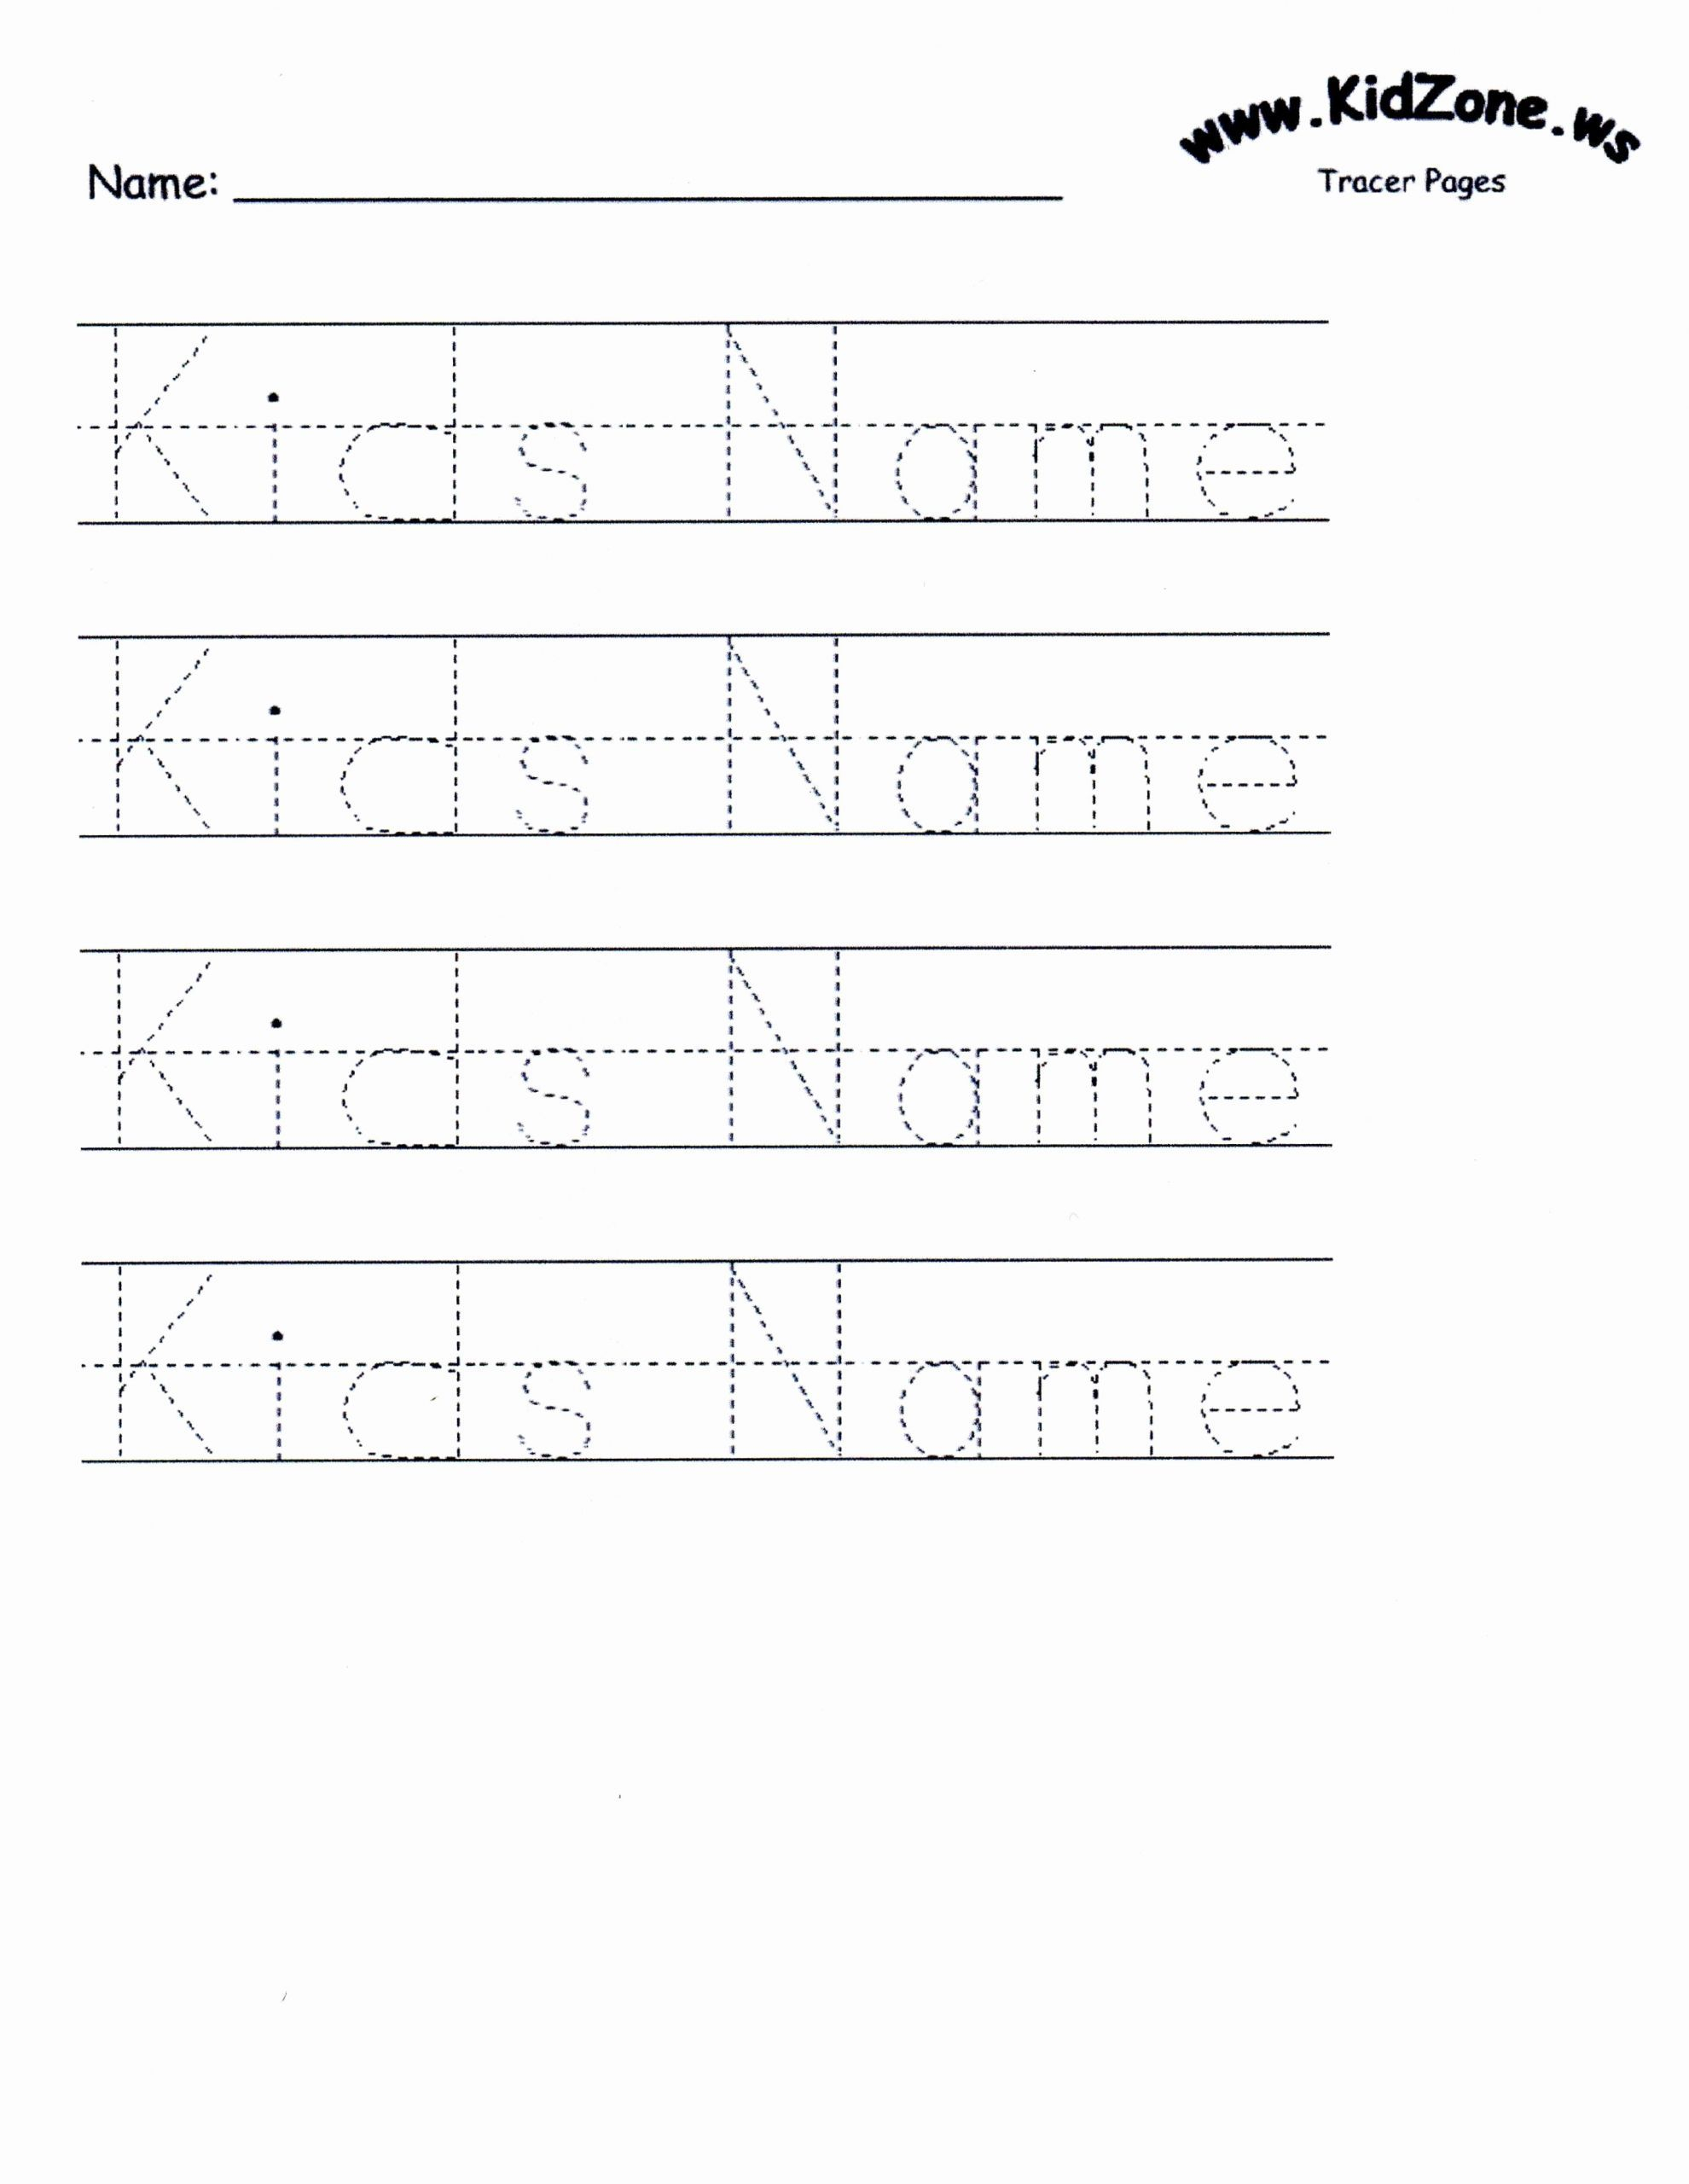 Traceable Name Worksheets For Preschoolers In 2020 | Tracing regarding Name Tracing Font With Lines